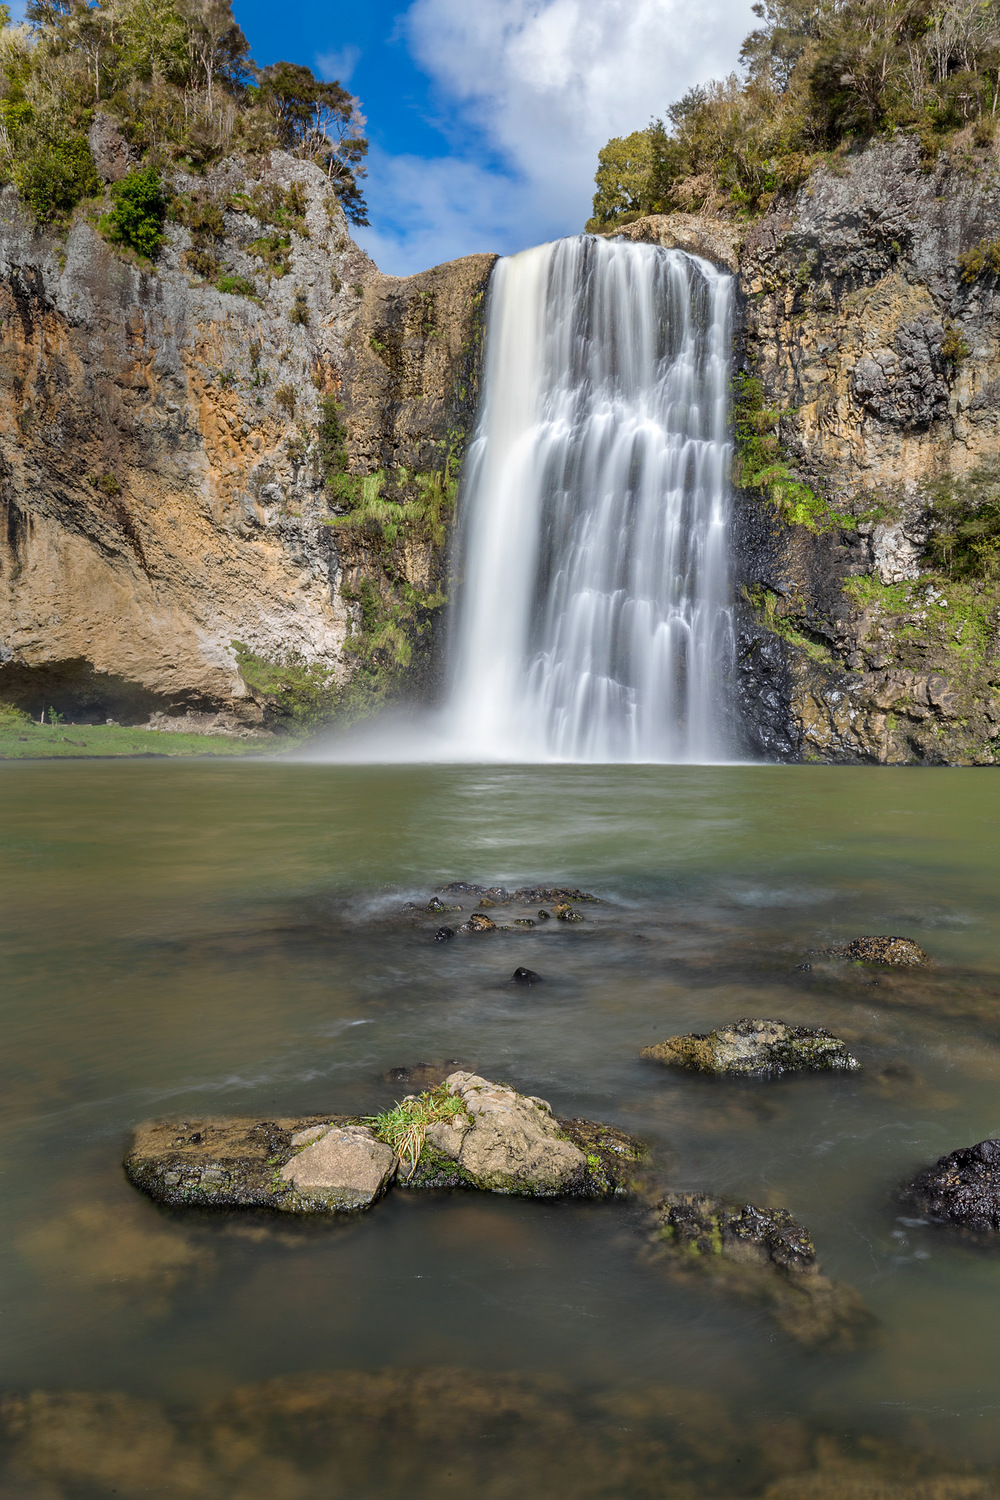 Hunua Falls Portrait | 31mm | 2x exposure blend @ 0.5 and 2 sec | f22 | ISO100